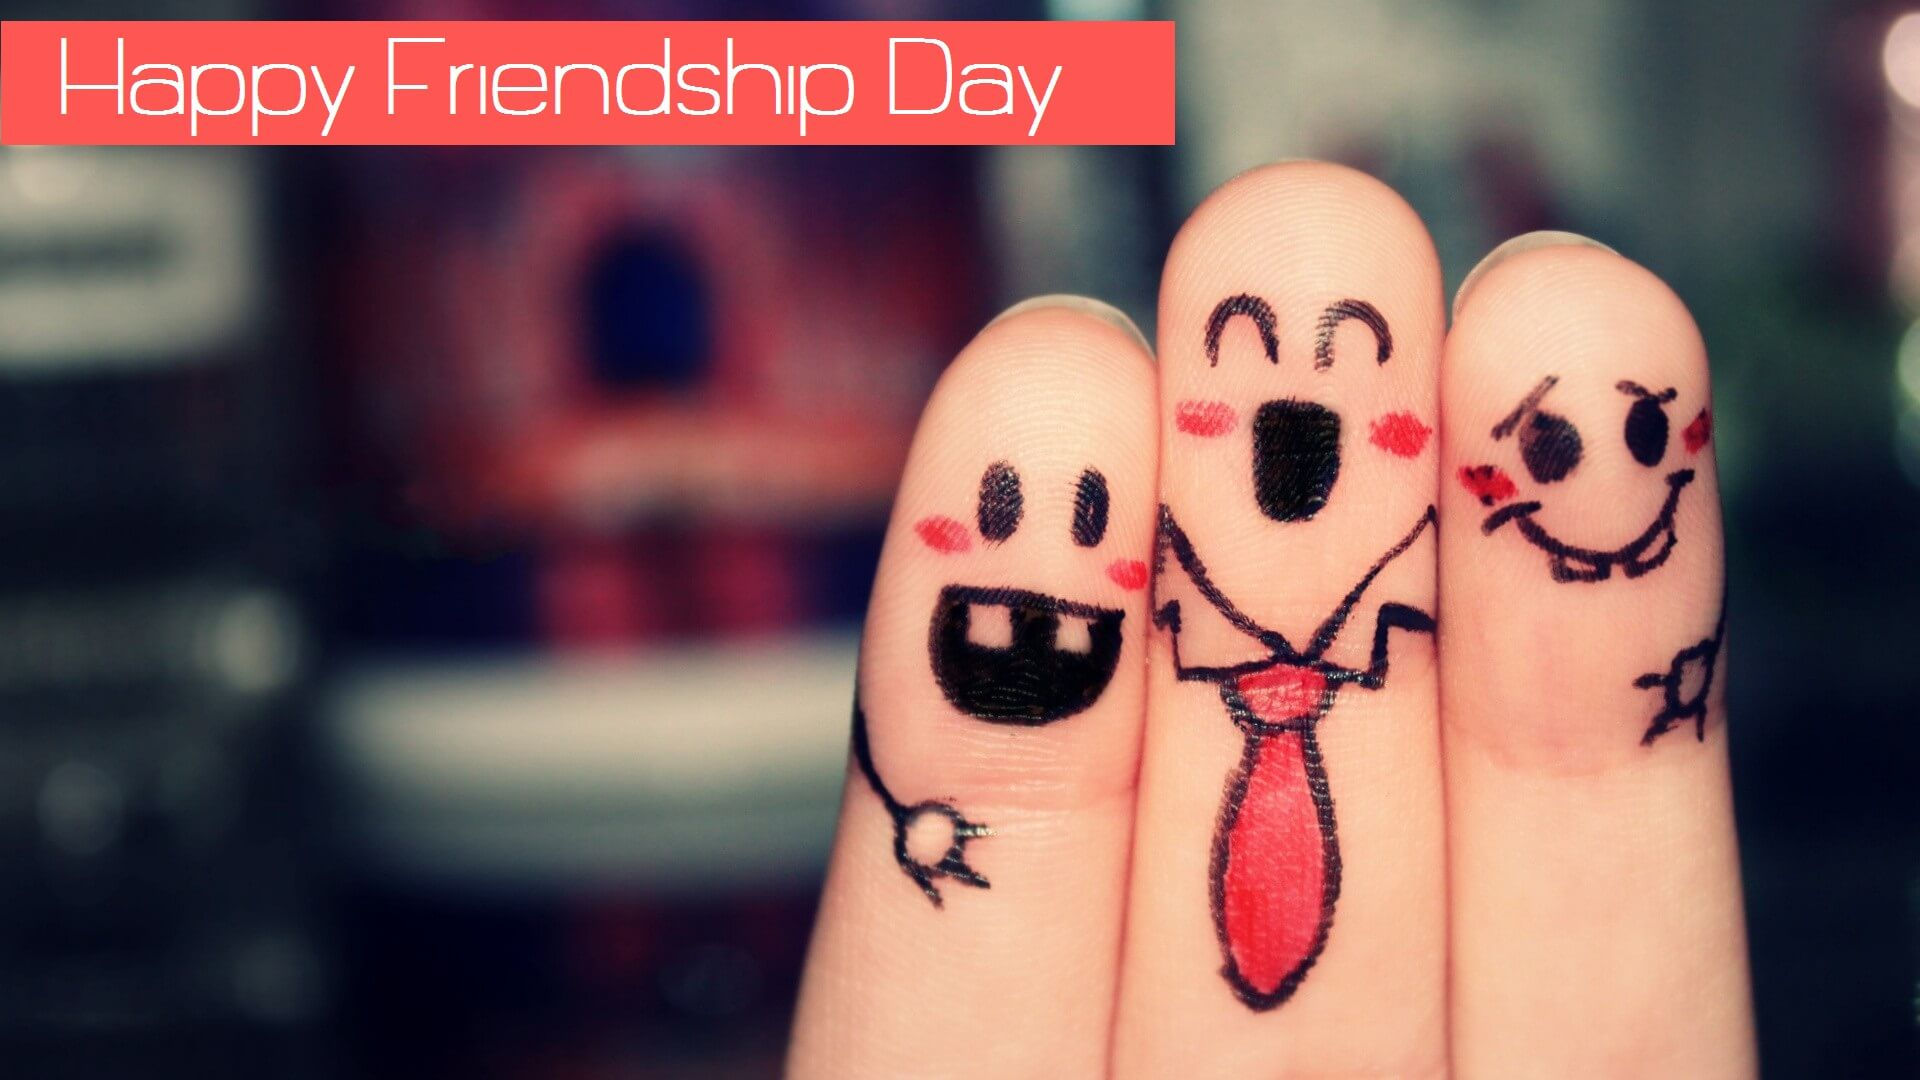 happy friendship day 2017 HD wallpaper images